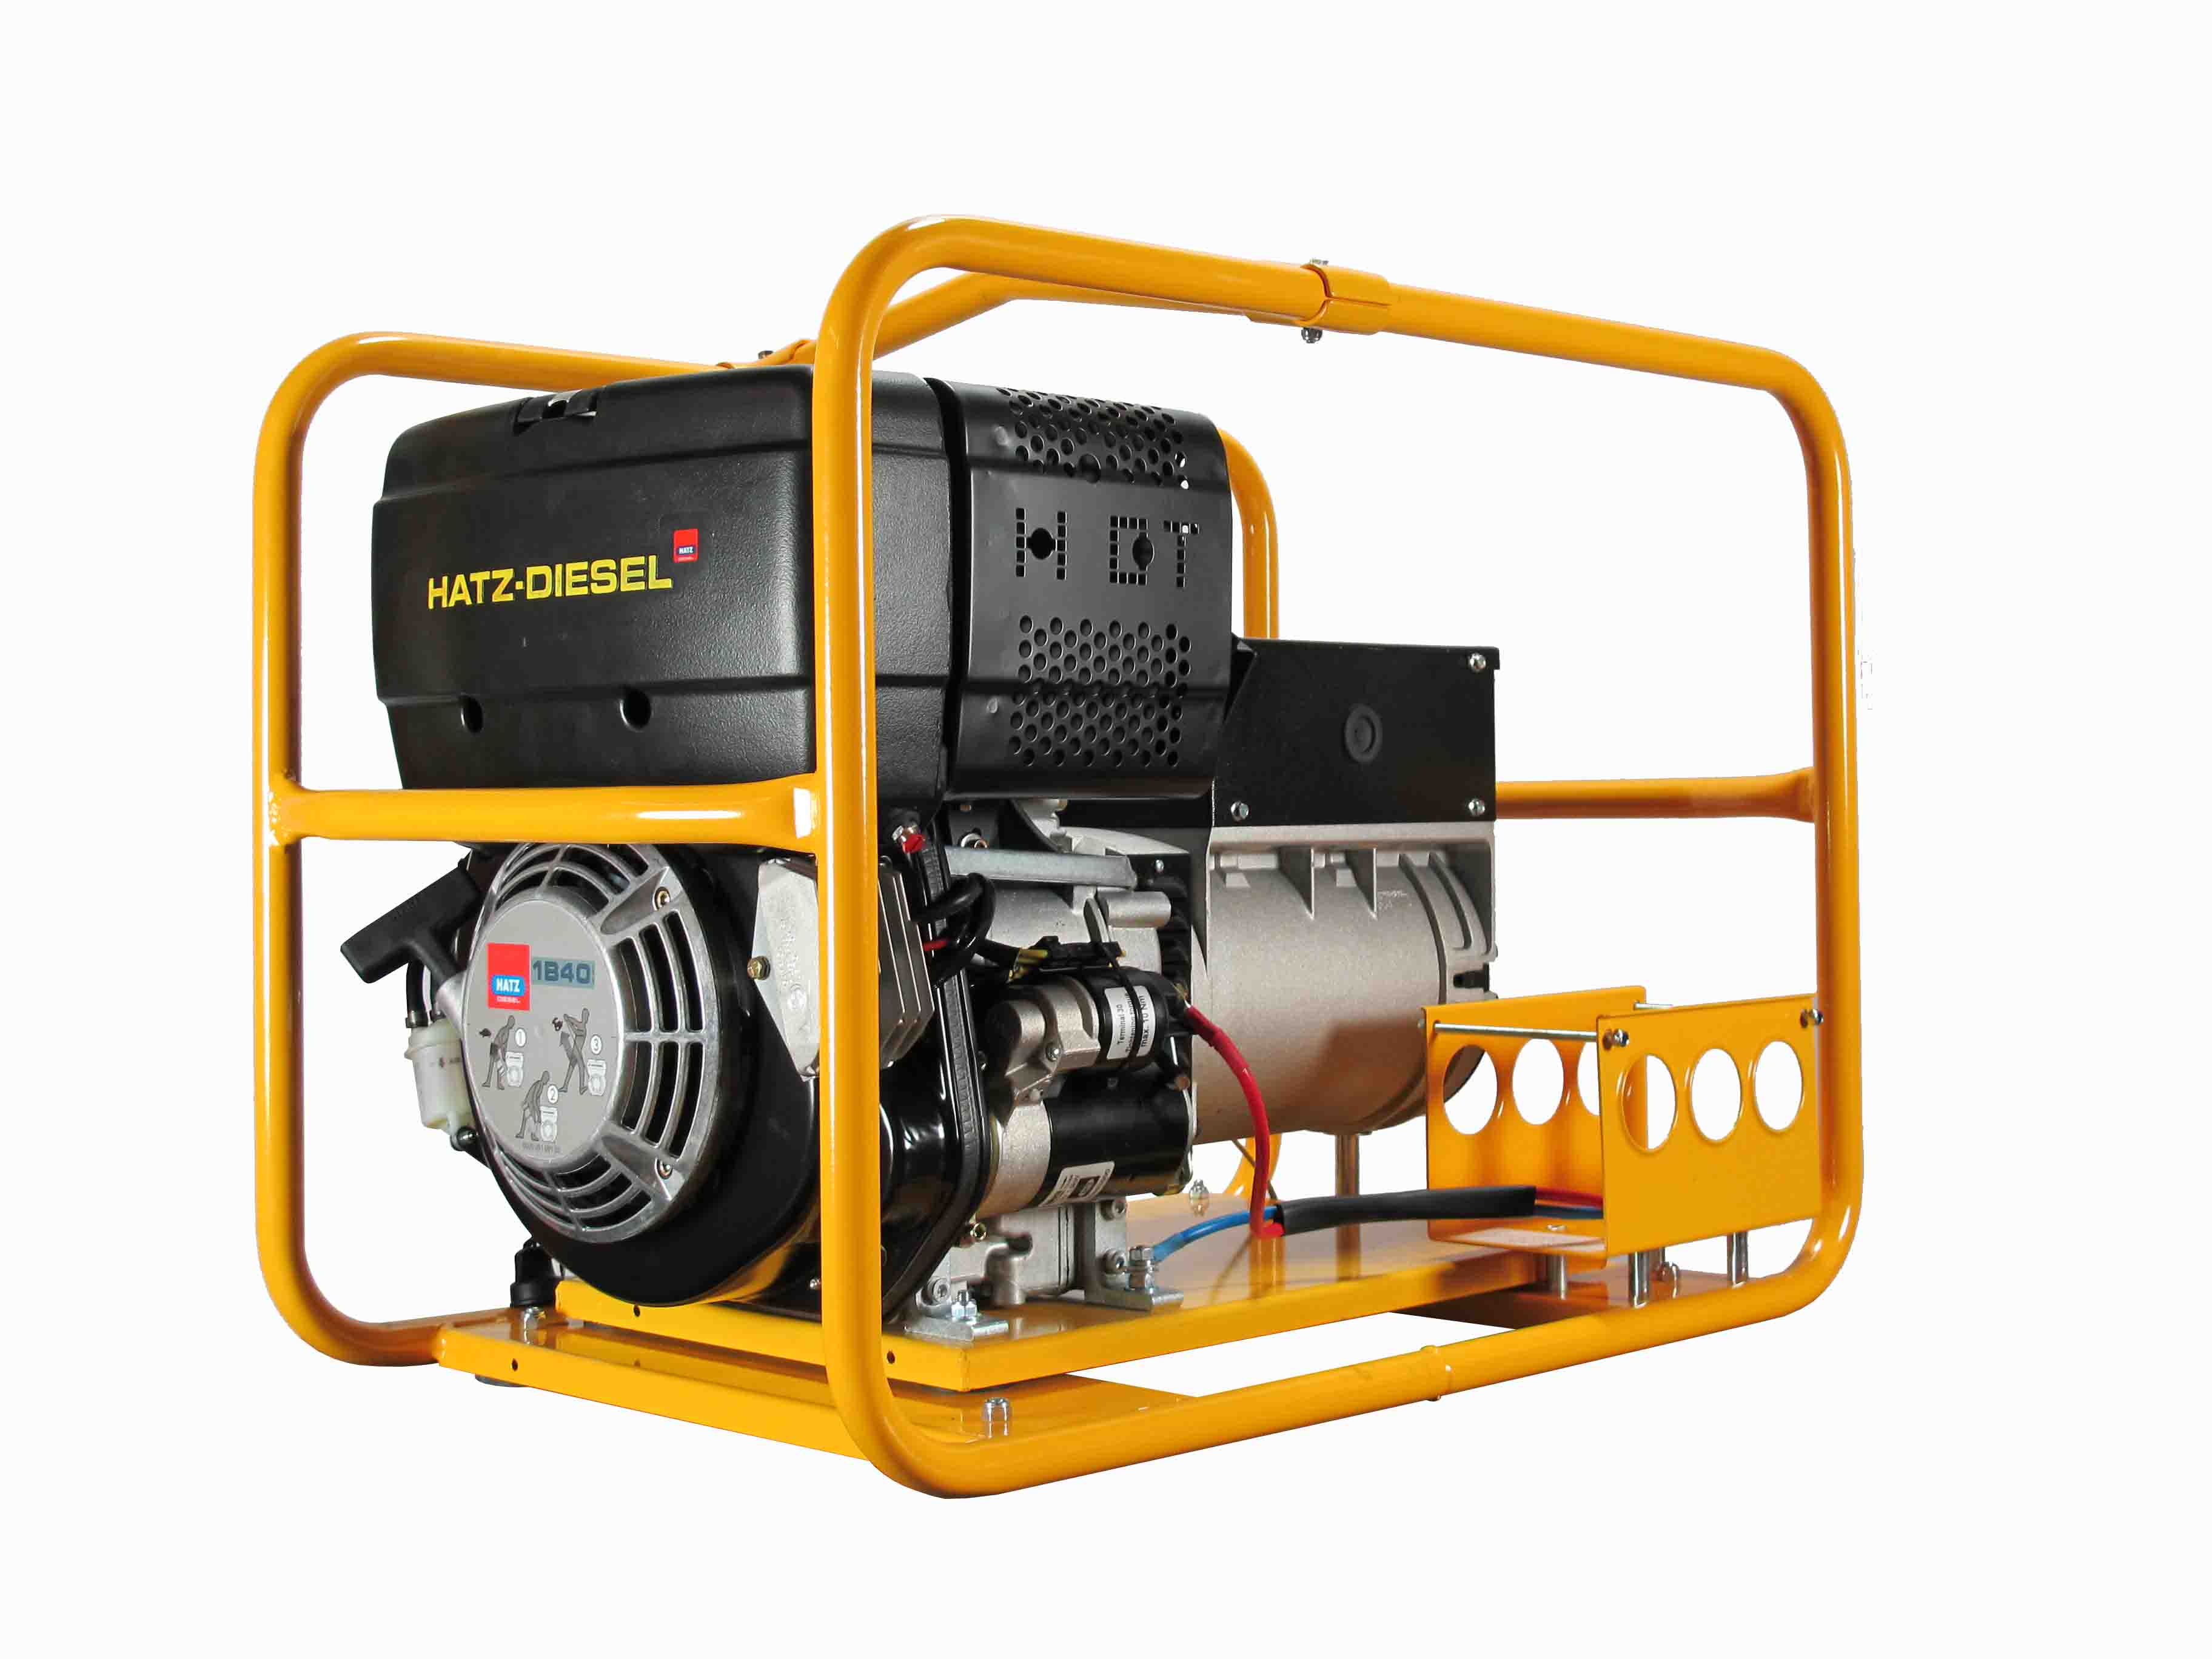 PHZD070E 3 – 5 500W 3 phase Generator with battery